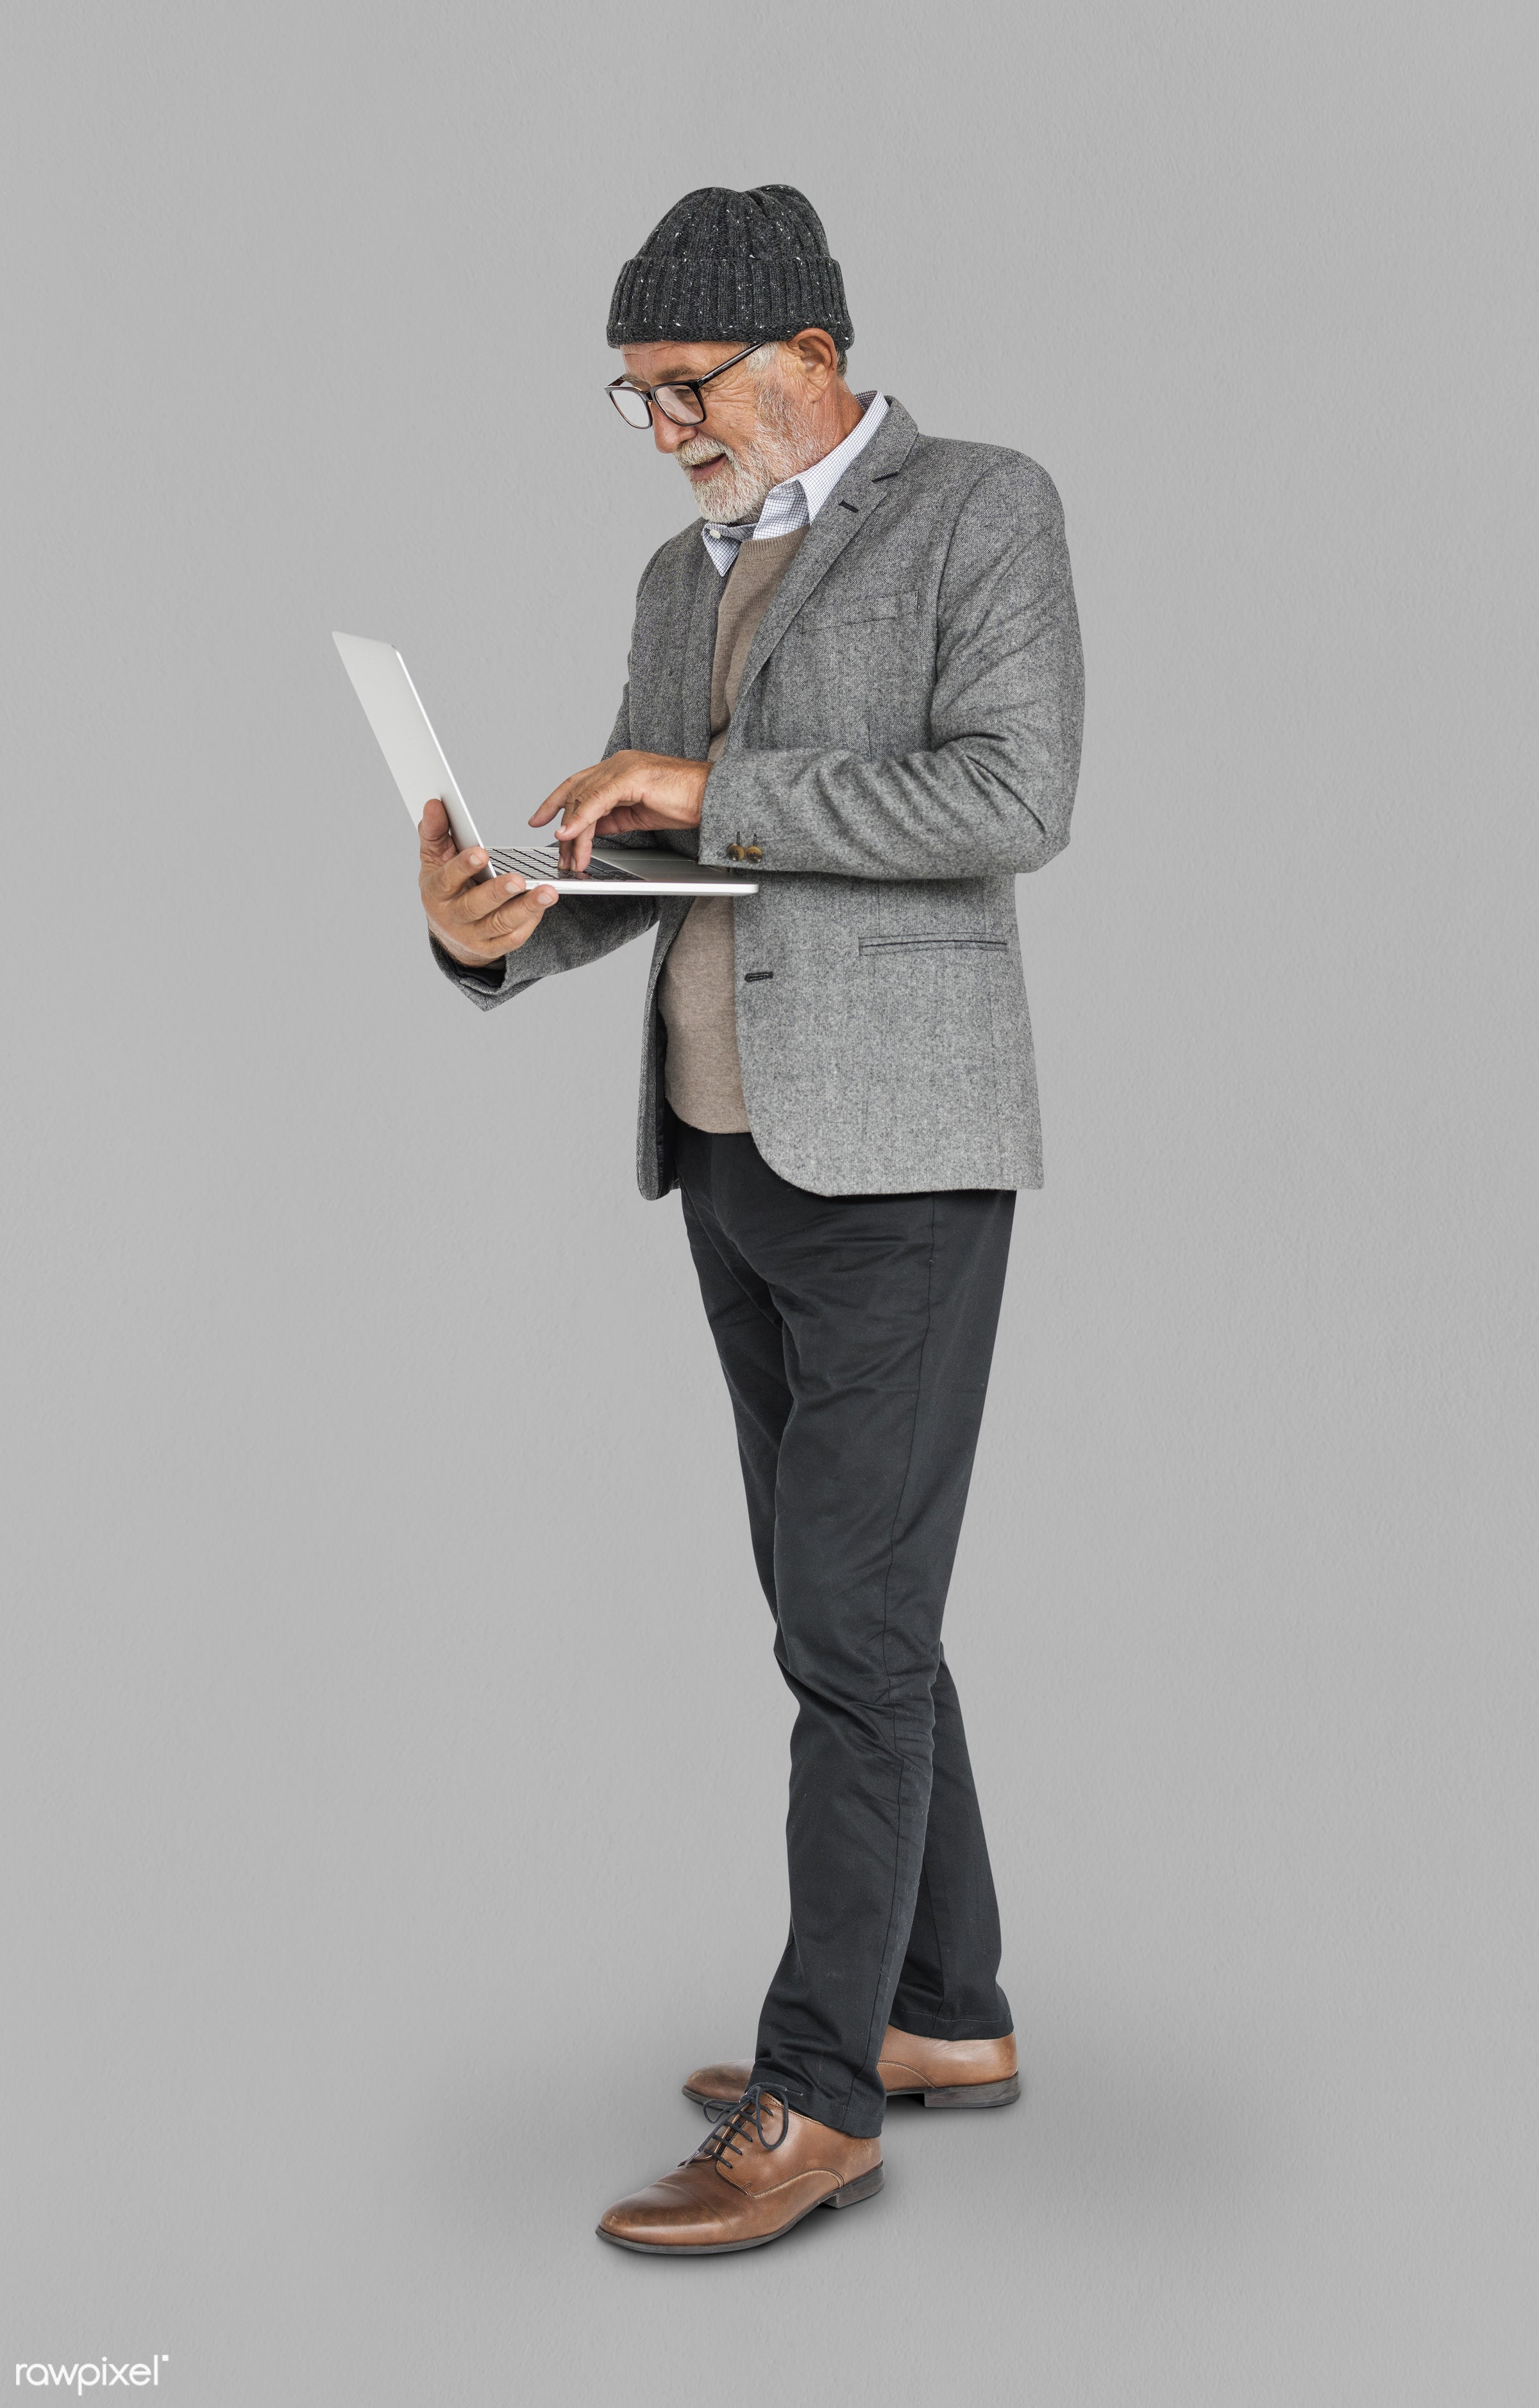 expression, studio, old, person, business wear, people, business, caucasian, pose, happy, laptop, smile, smiling, man,...